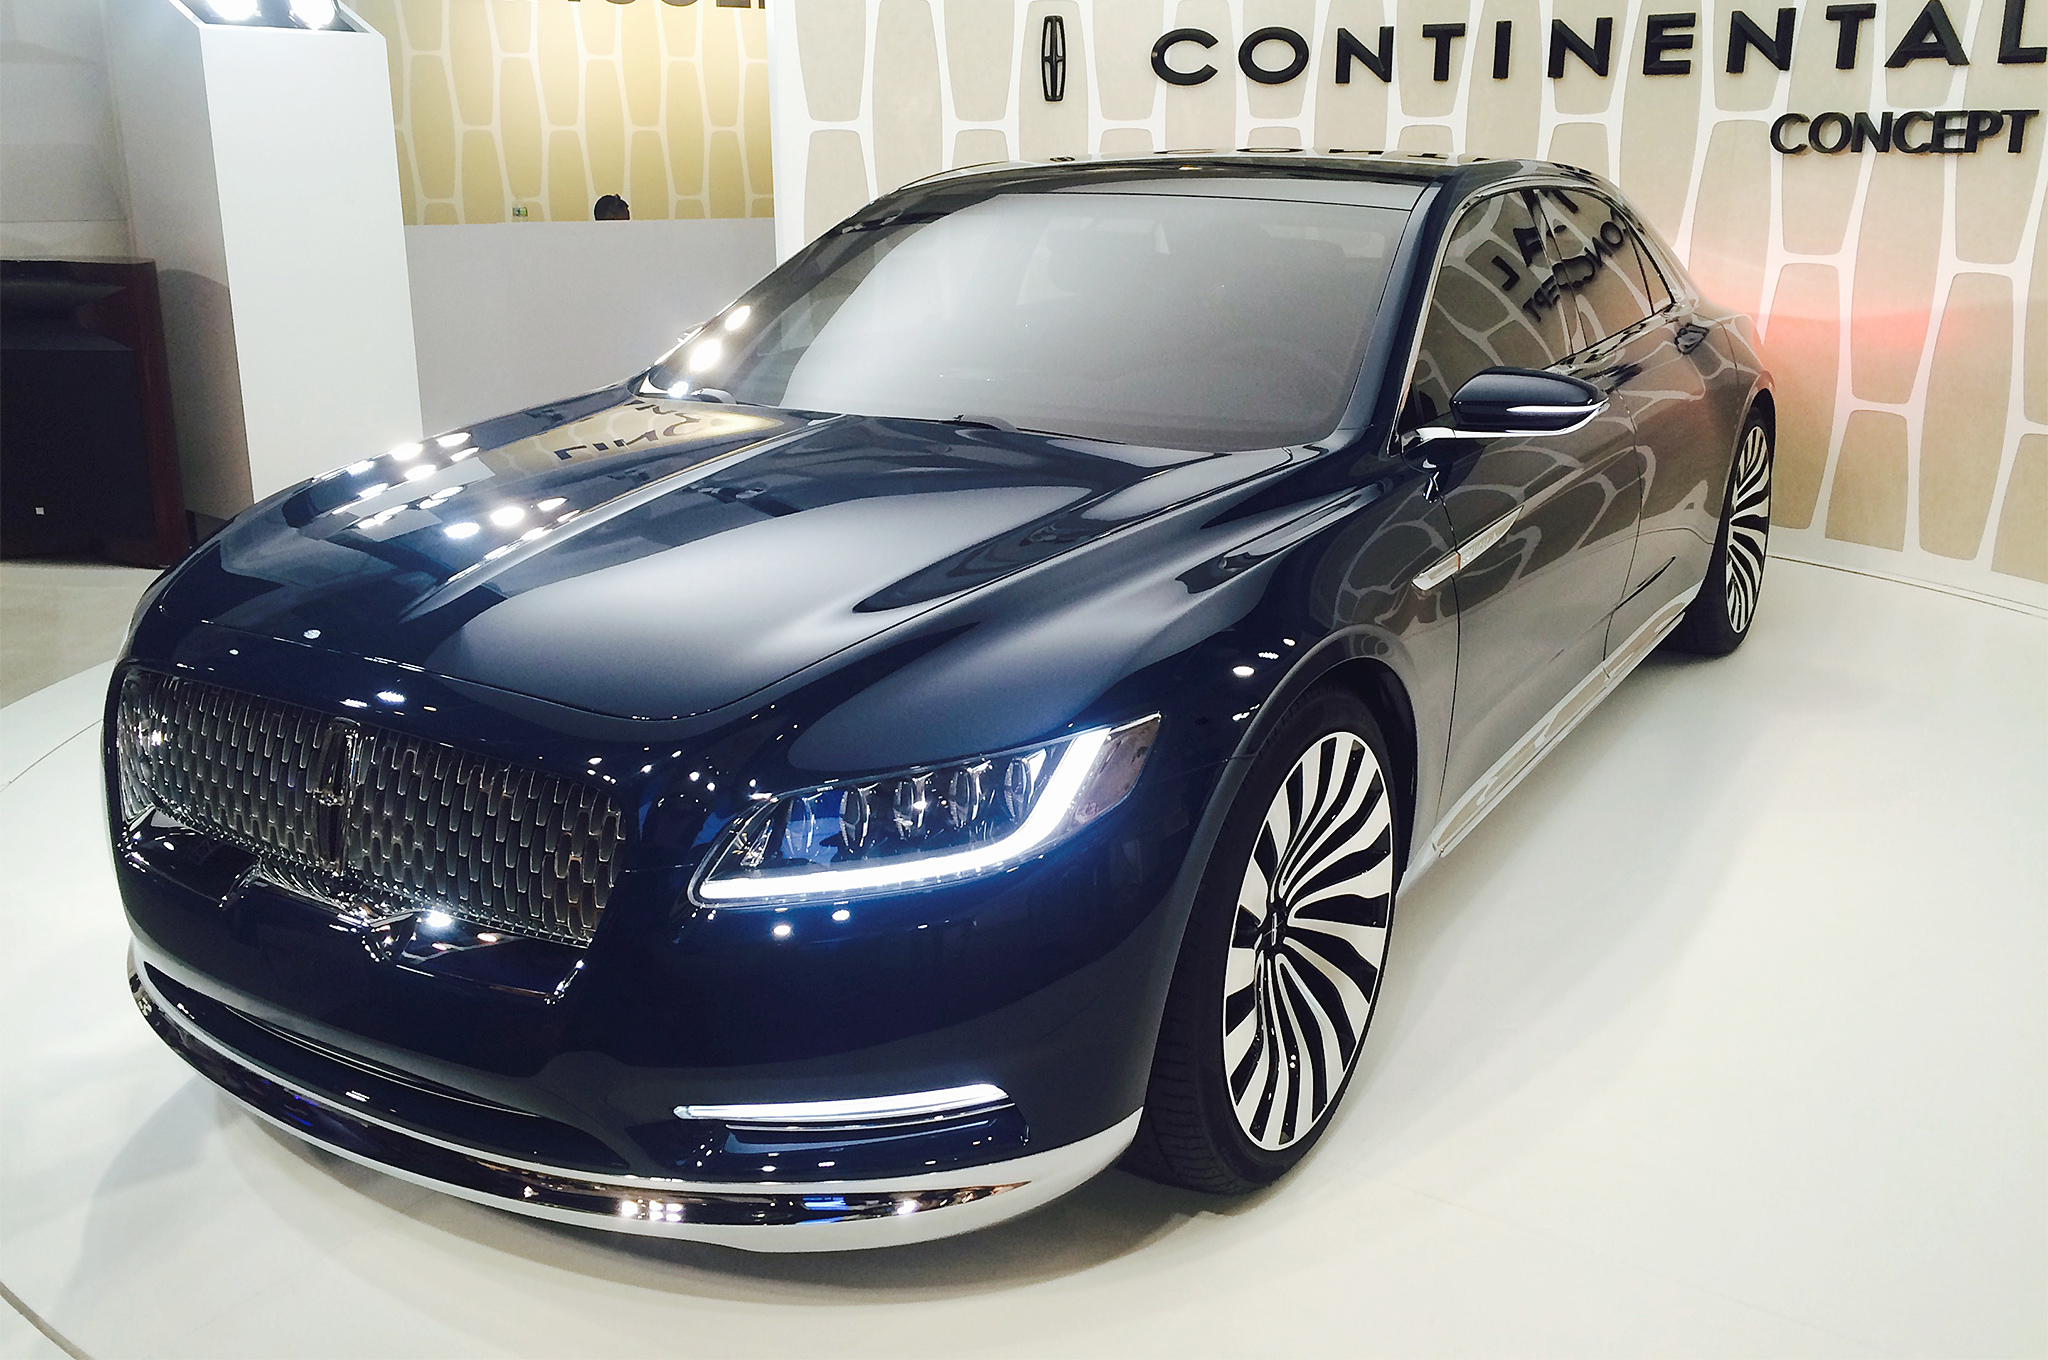 American Luxury Face Off Cadillac Ct6 Vs Lincoln Continental Concept